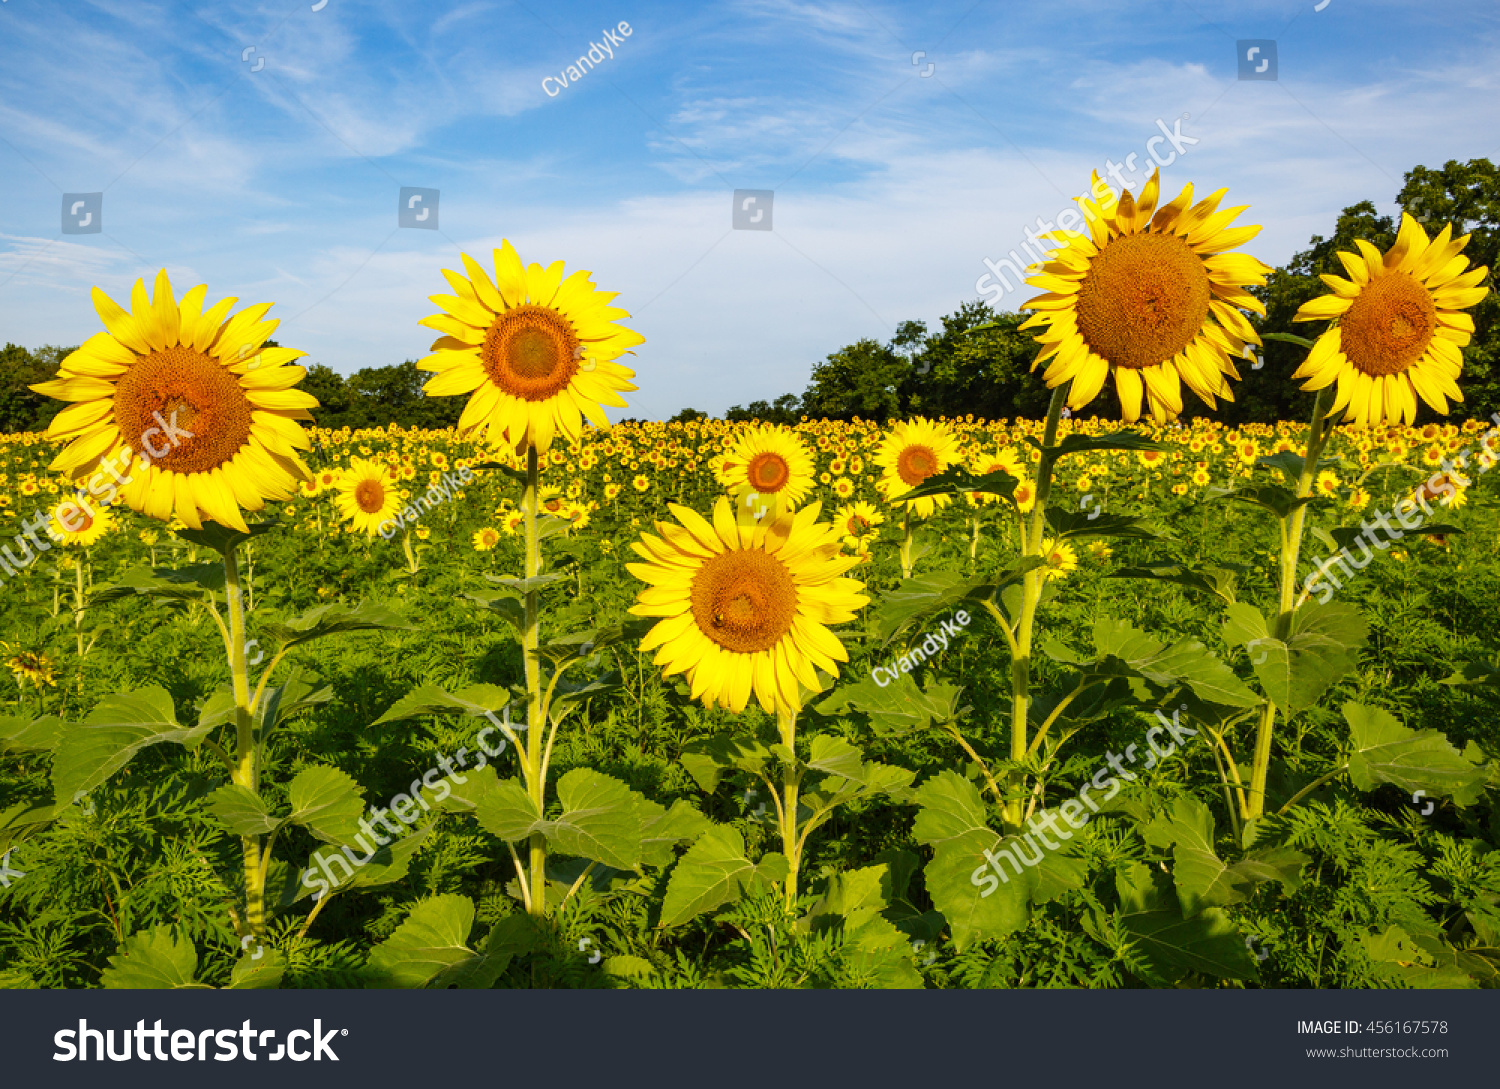 Several Tall Sunflowers Daisylike Flower Faces Stock Photo Edit Now